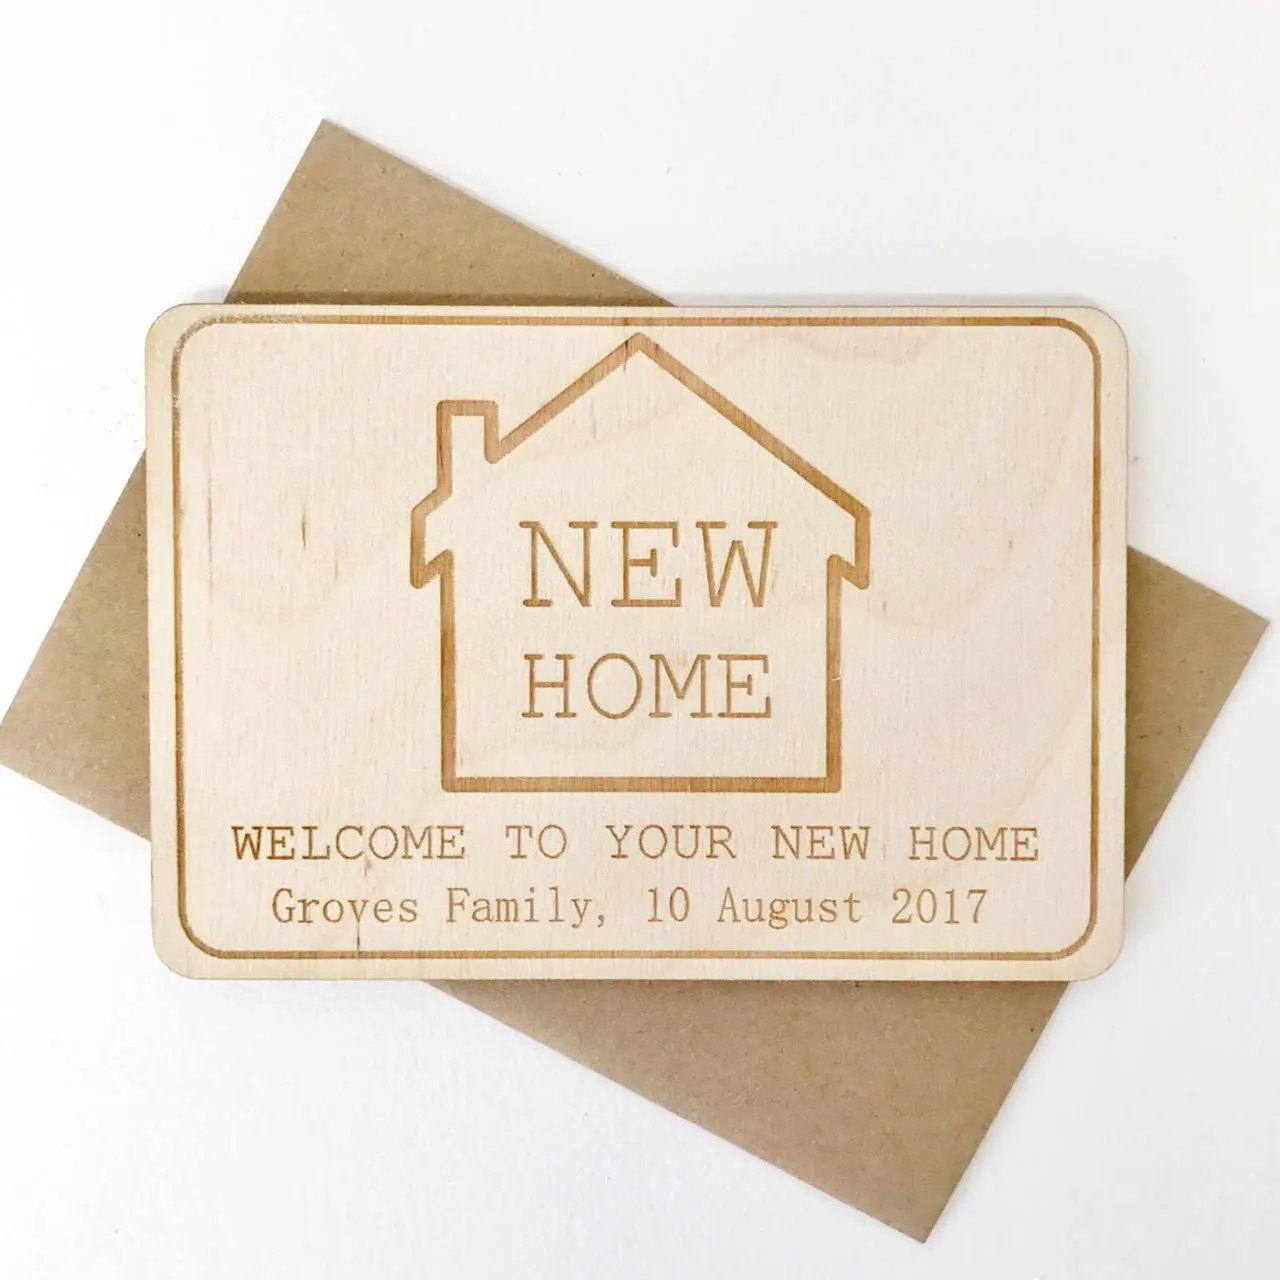 Personalised New Home Gifts New Home Gift Personalised New Home Card New Home Card New Home Gift Card New Home New Home Present Personalised New Home Gift